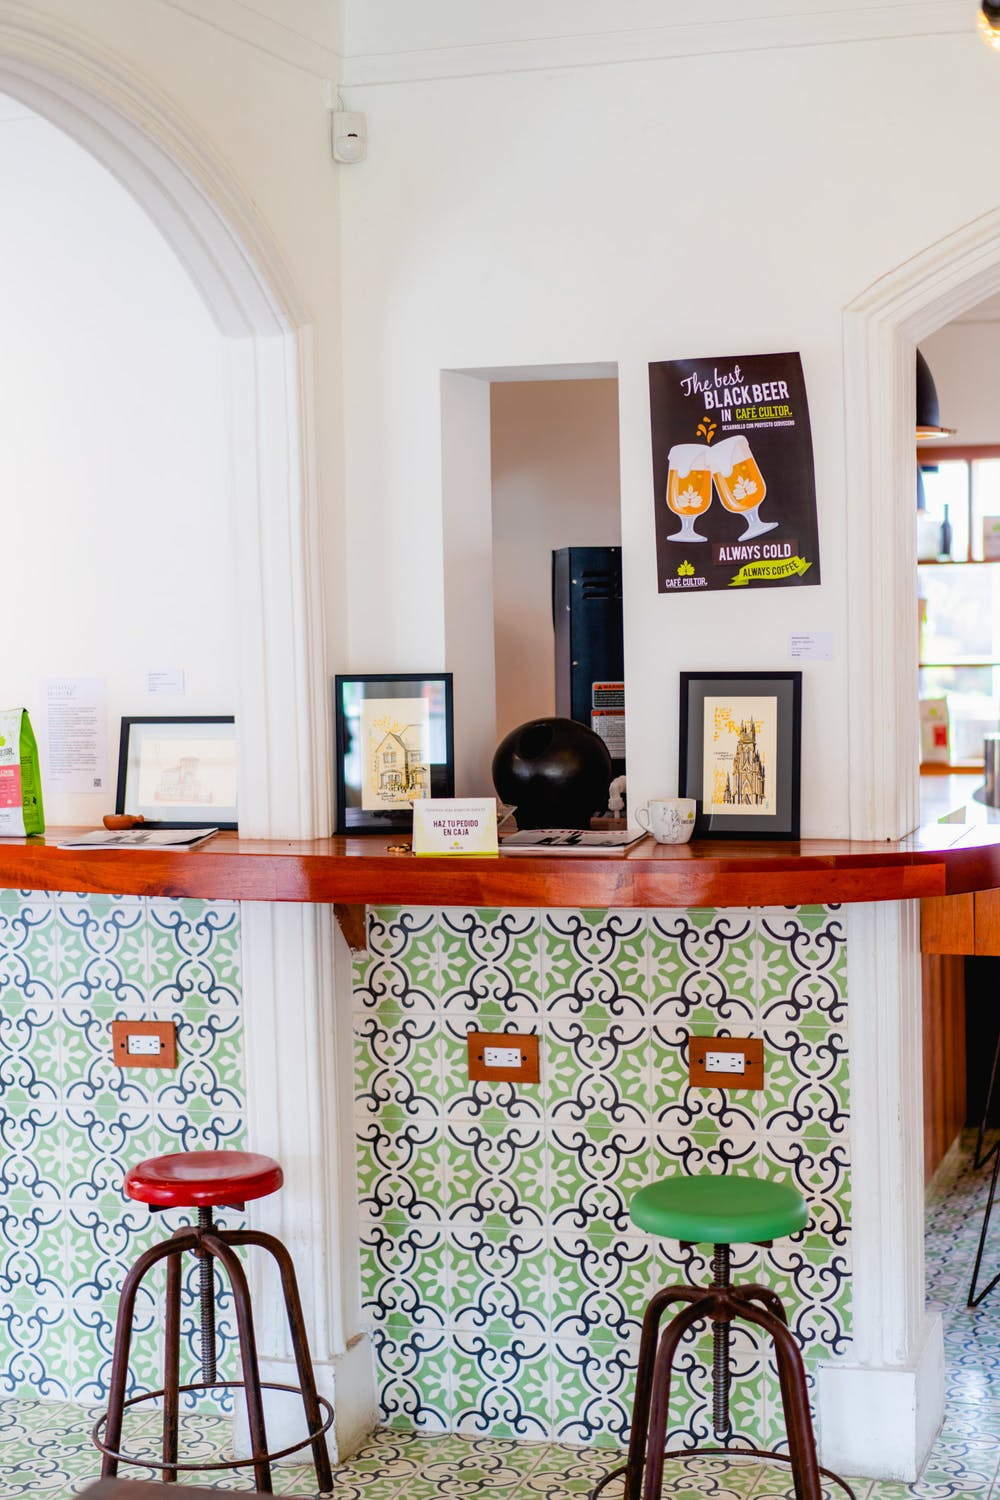 Red and green stools at a coffeeshop bar wit white walls and patterned tiles